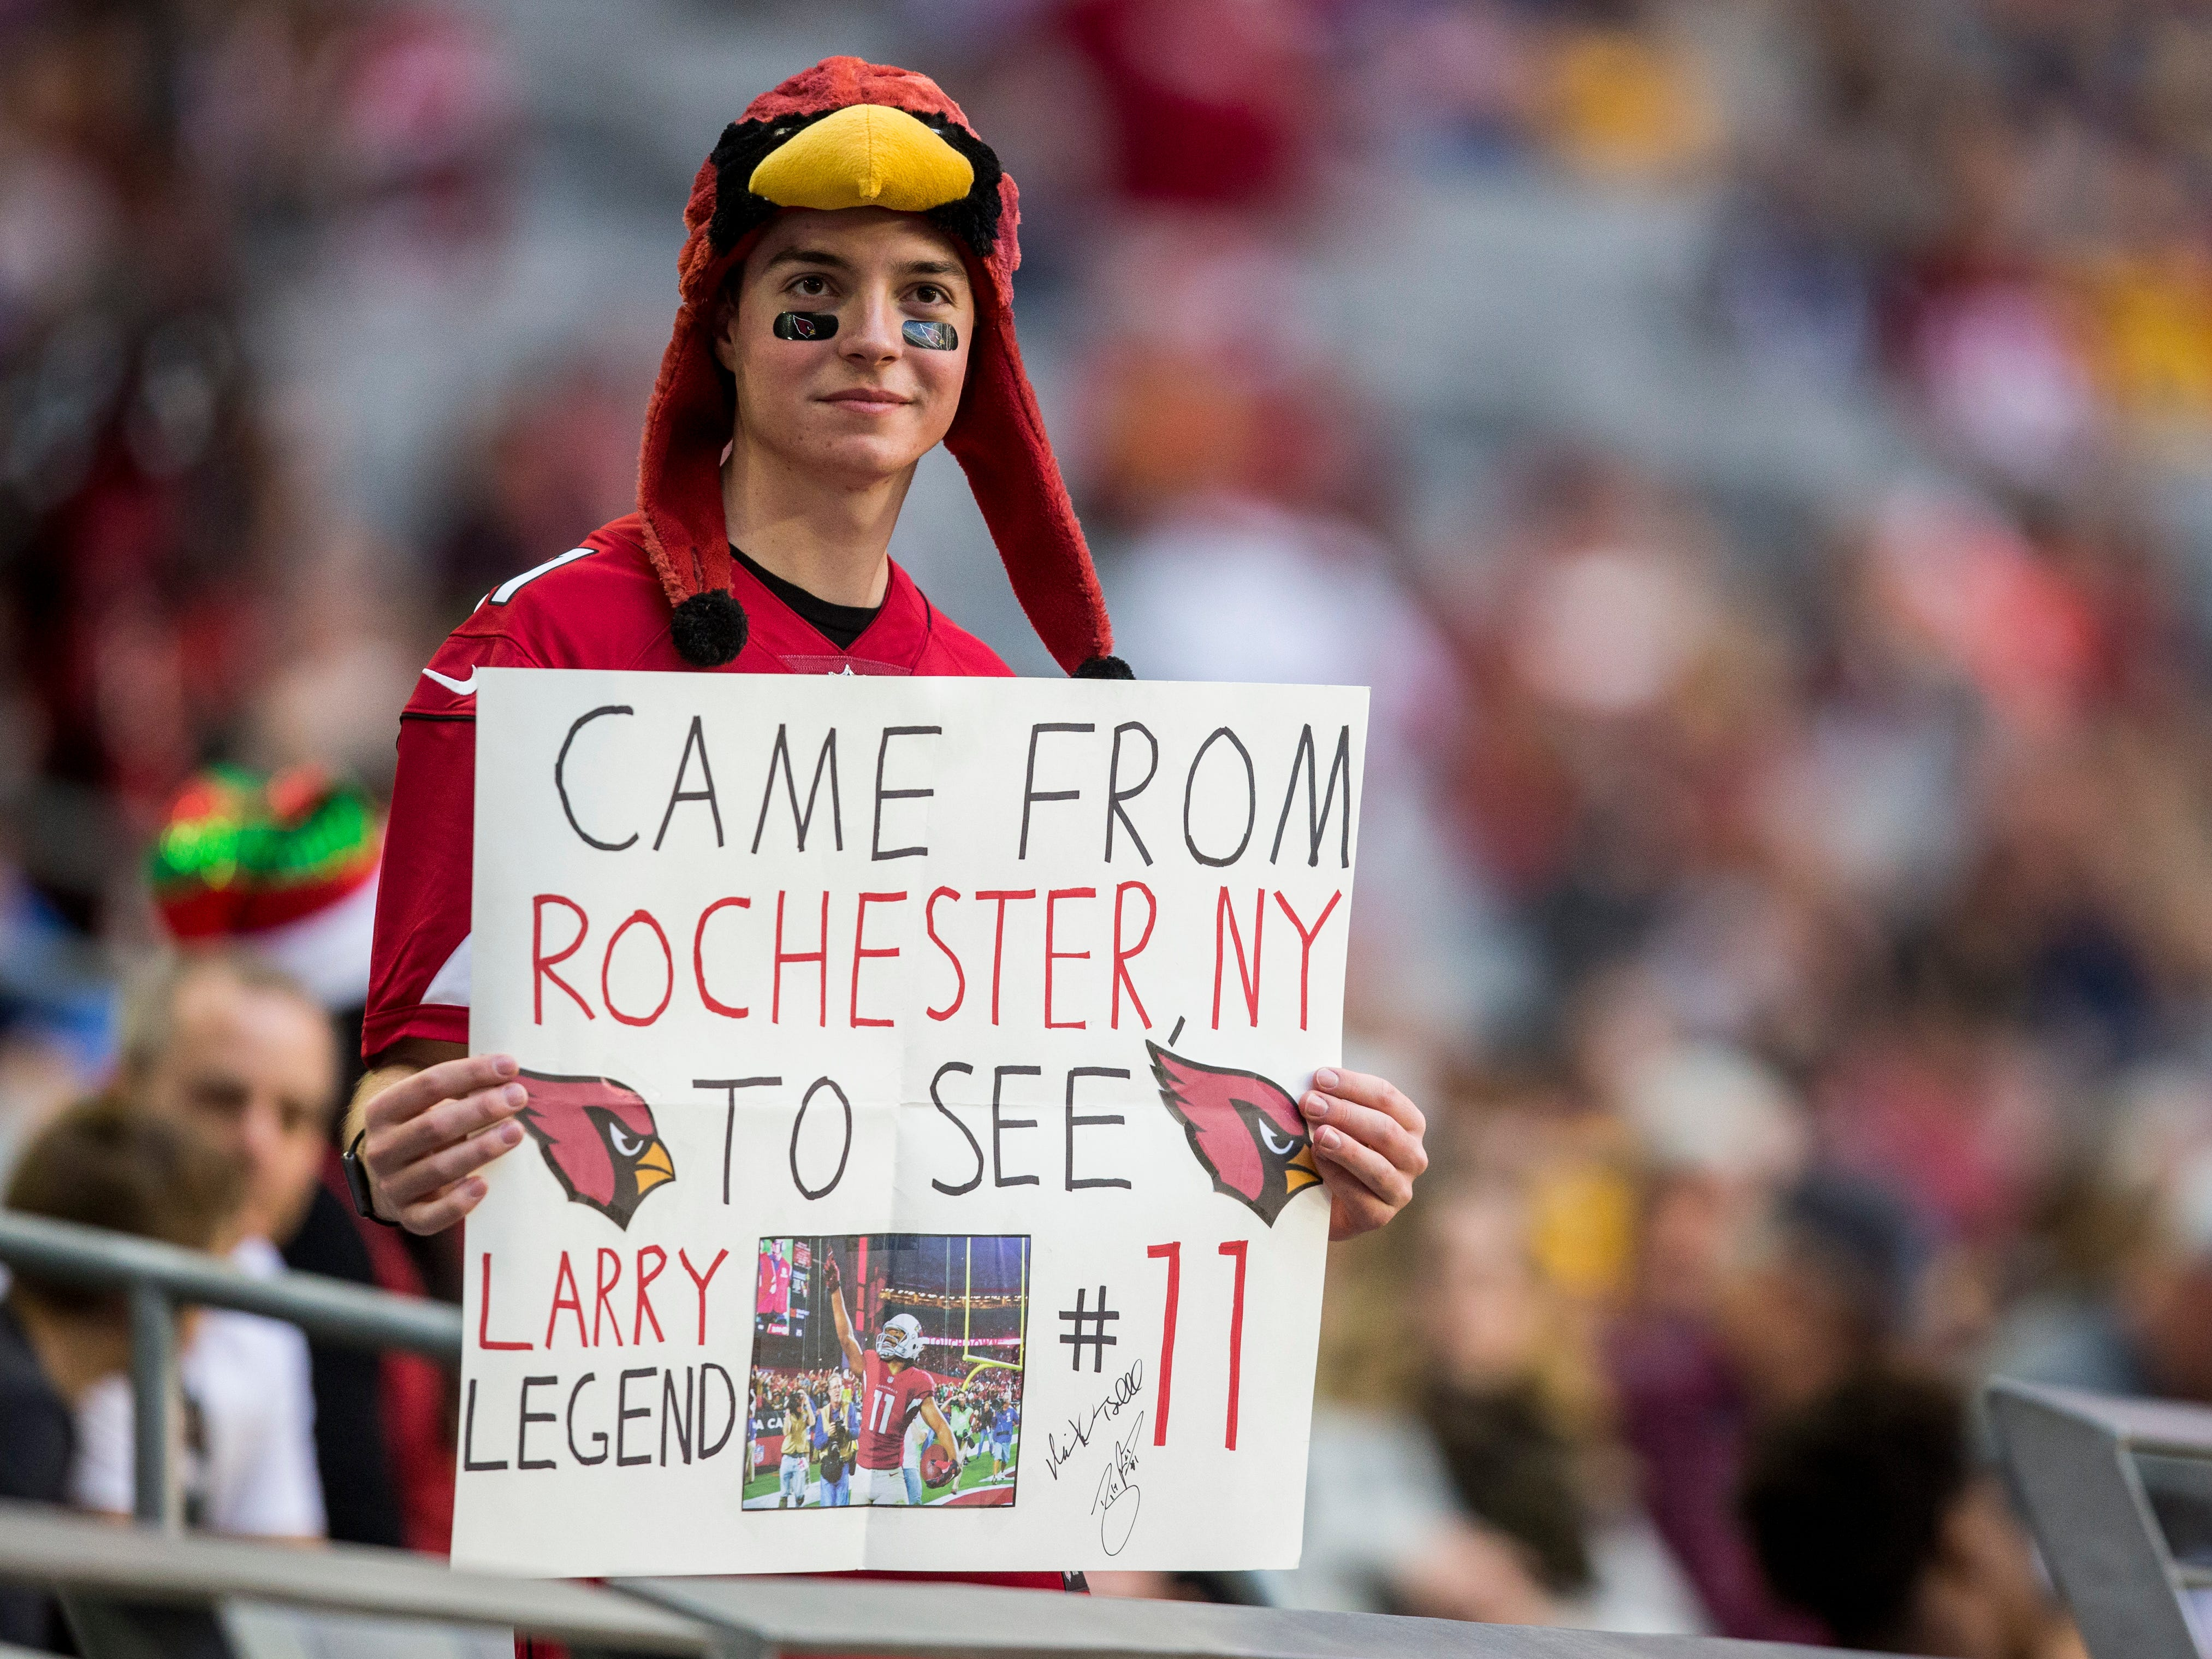 Jonah Sharp, 21, holds a sign for Larry Fitzgerald before the Cardinals game against the Rams on Sunday, Dec. 23, 2018, at State Farm Stadium in Glendale, Ariz.